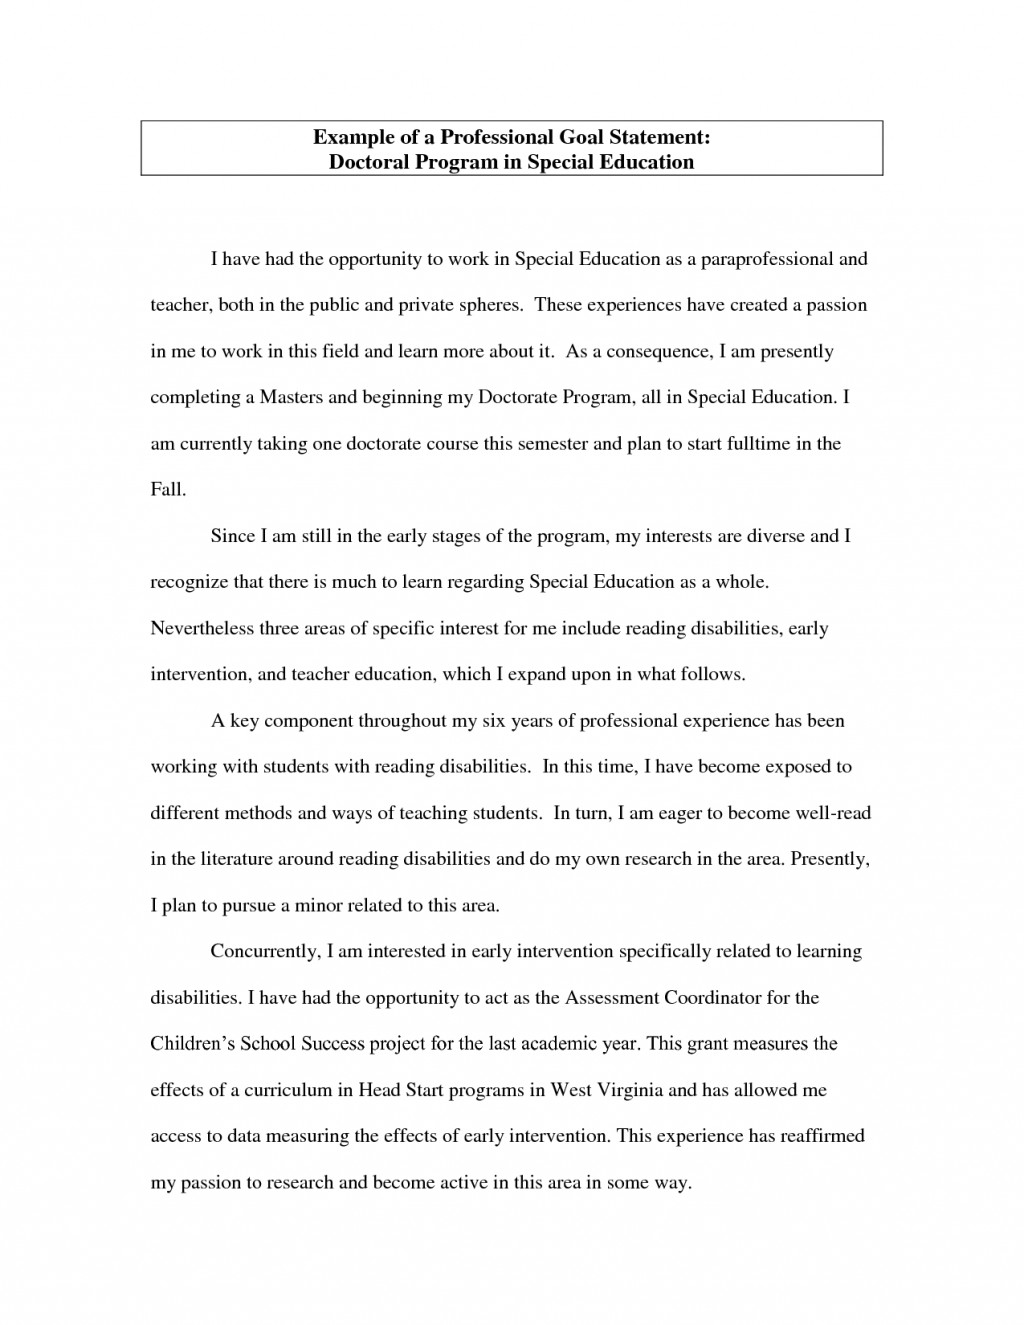 008 Career Goal Statement Zdxttkpg Essay Example Educational Goals Shocking Examples And Pdf Large